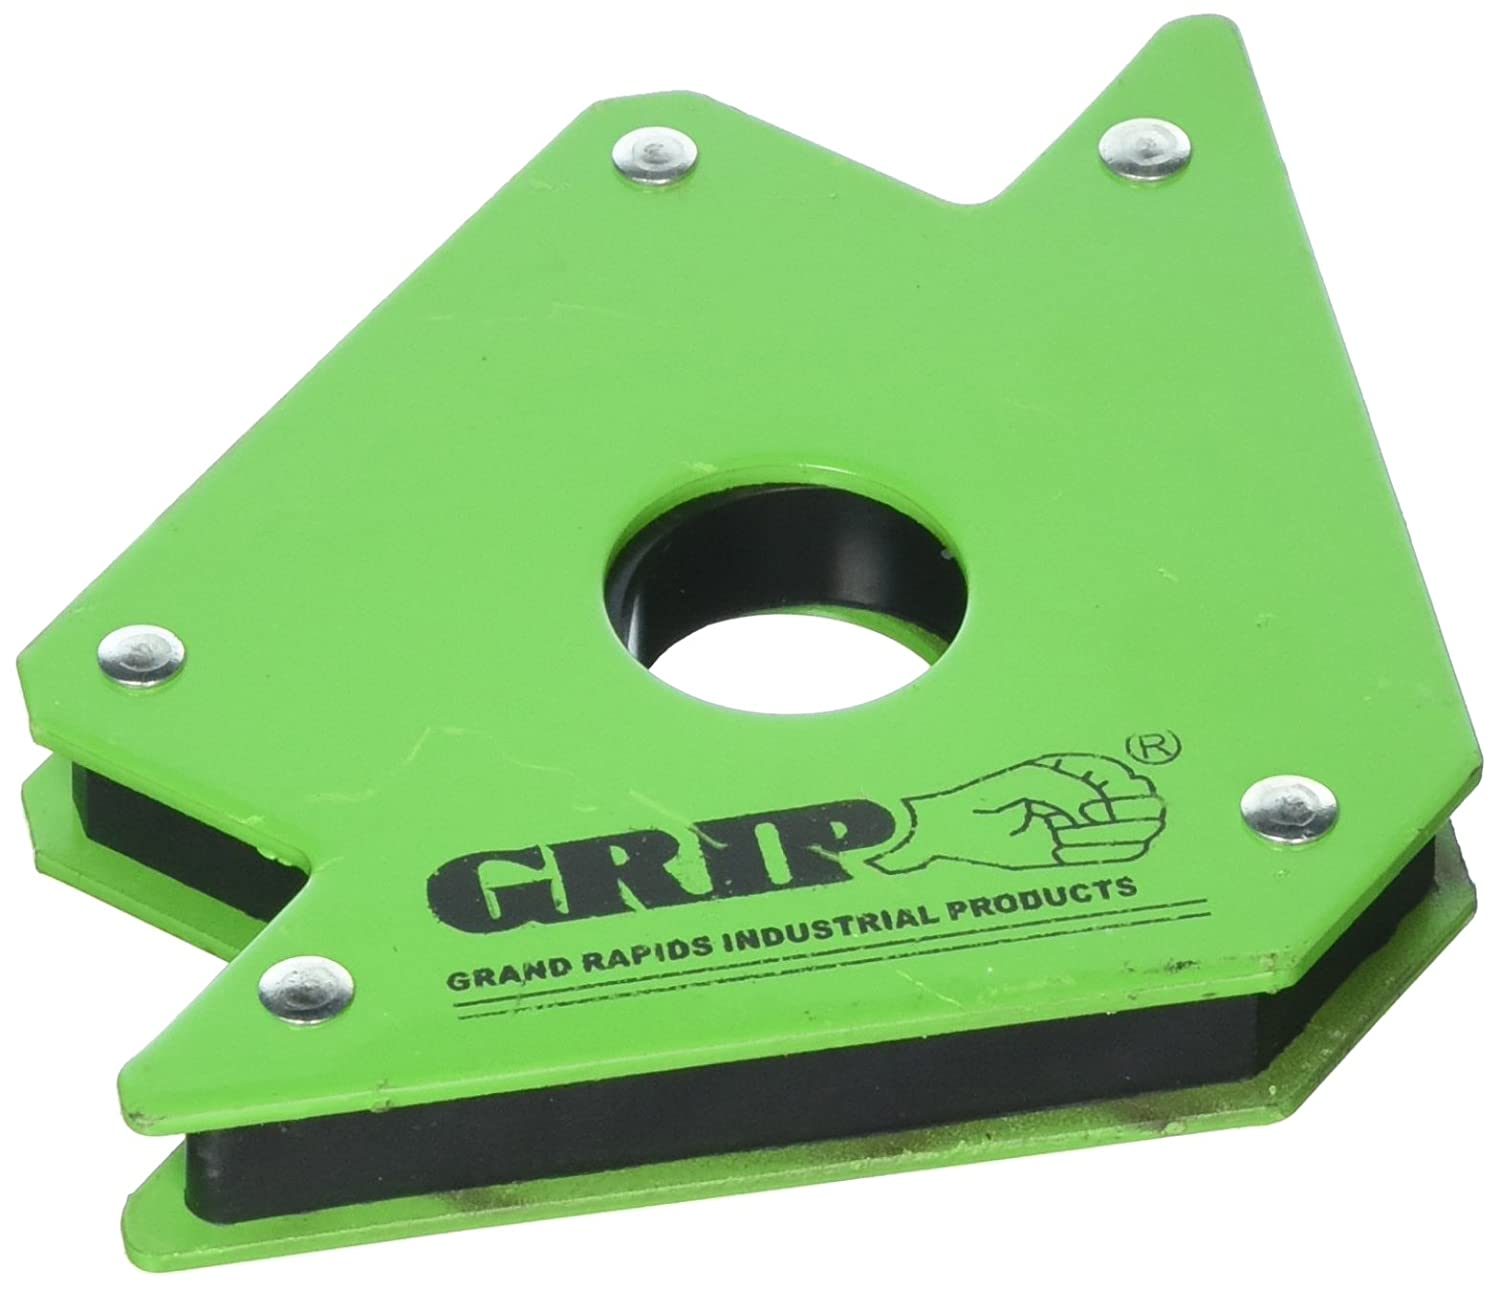 50 lb GRIP 85100 Grip Arrow Welding Magnet